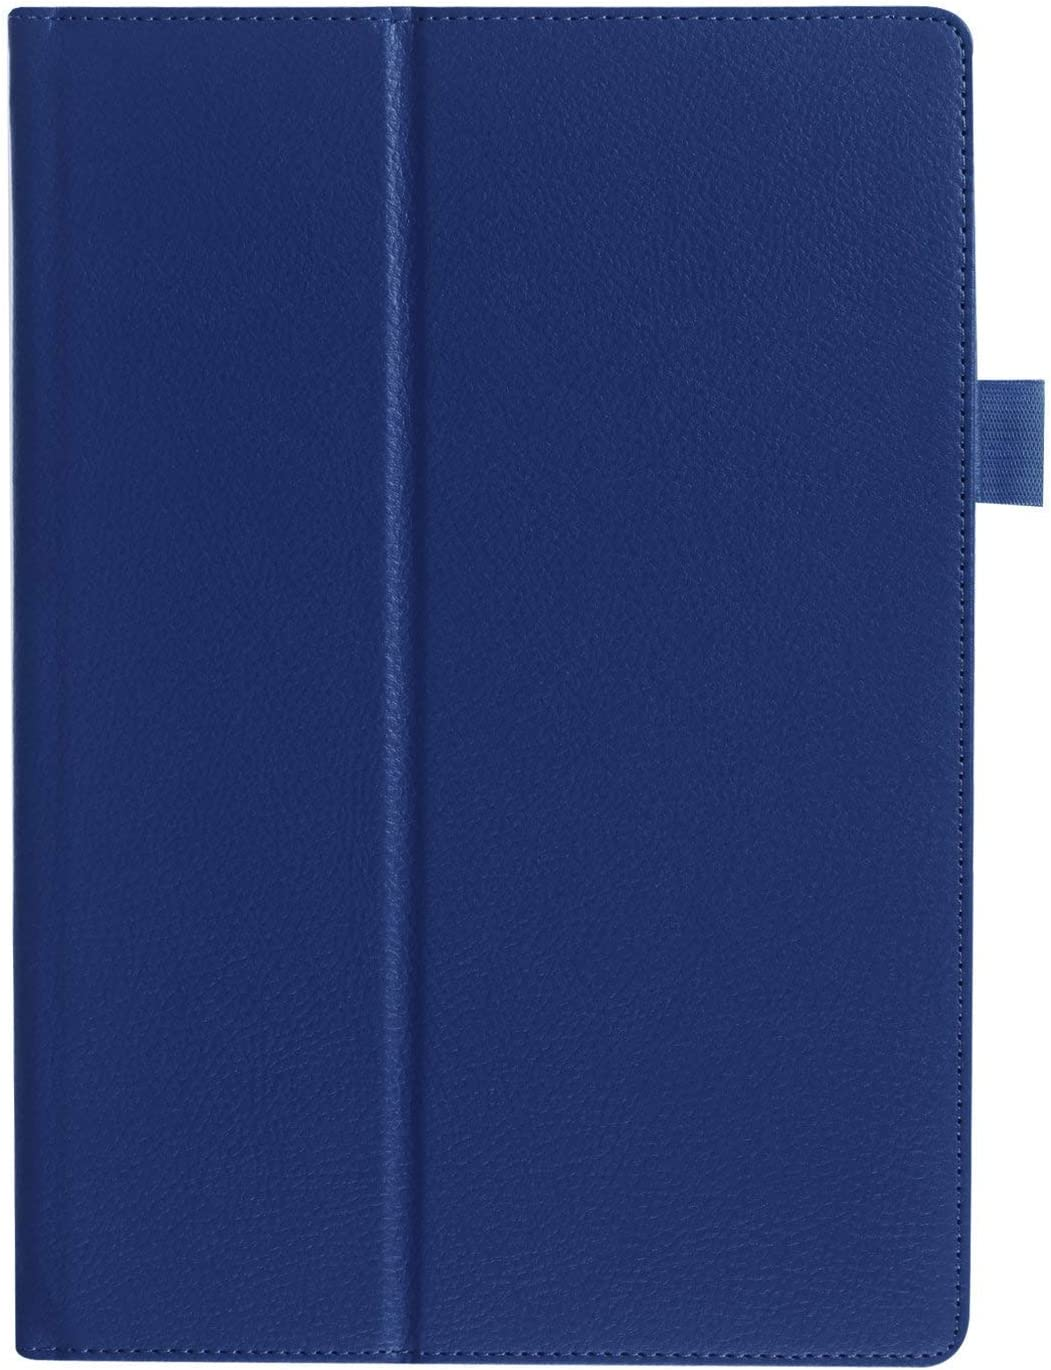 Asng ASUS MeMO Pad Smart ME301T Case - Slim Folding Cover with Auto Wake/Sleep for ASUS MeMO Pad Smart ME301T 10.1 Inch Tablet (Drak Blue)